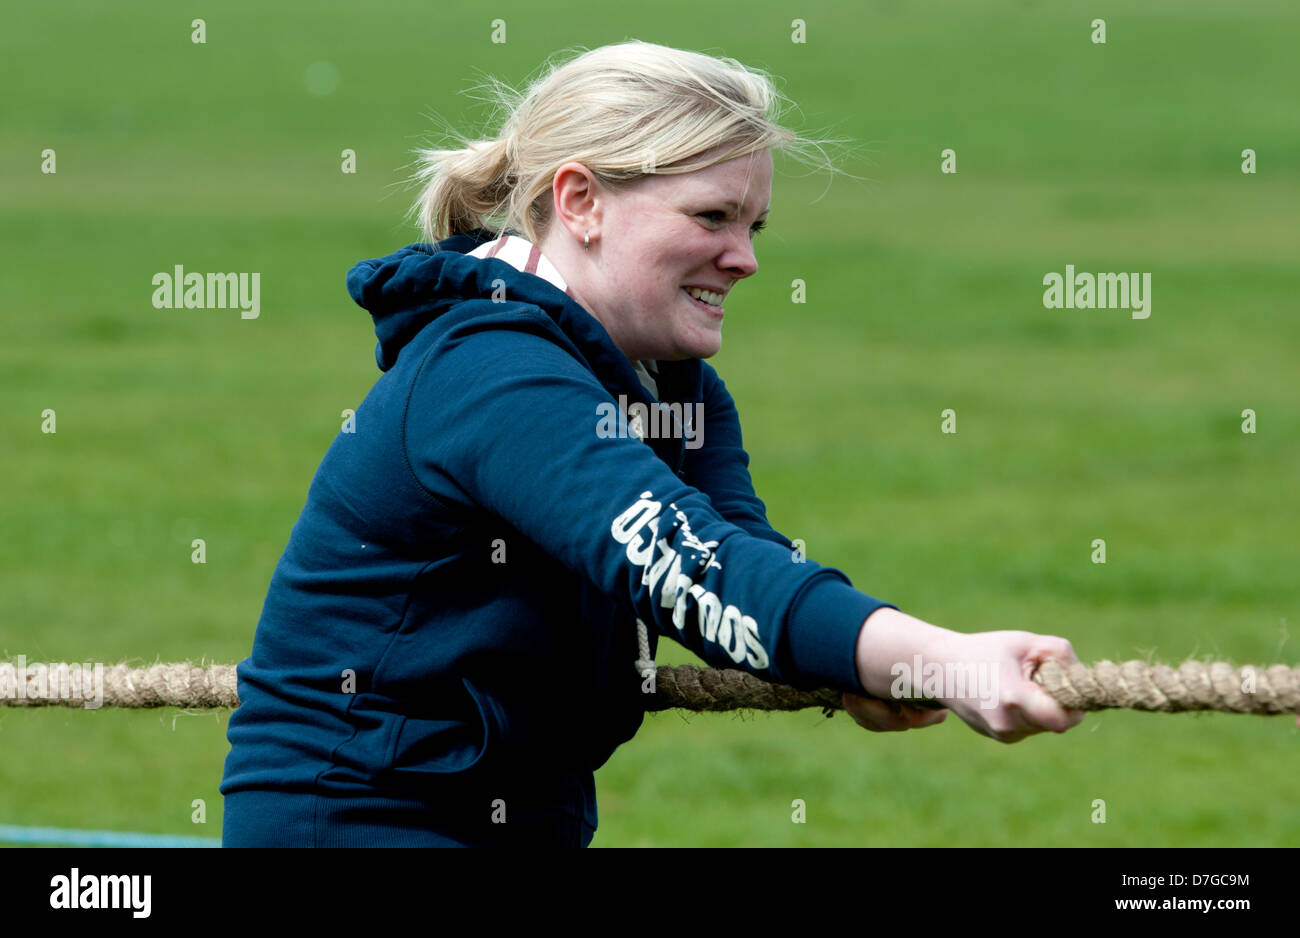 Tug of war at Hearsall Common, Coventry, UK - Stock Image